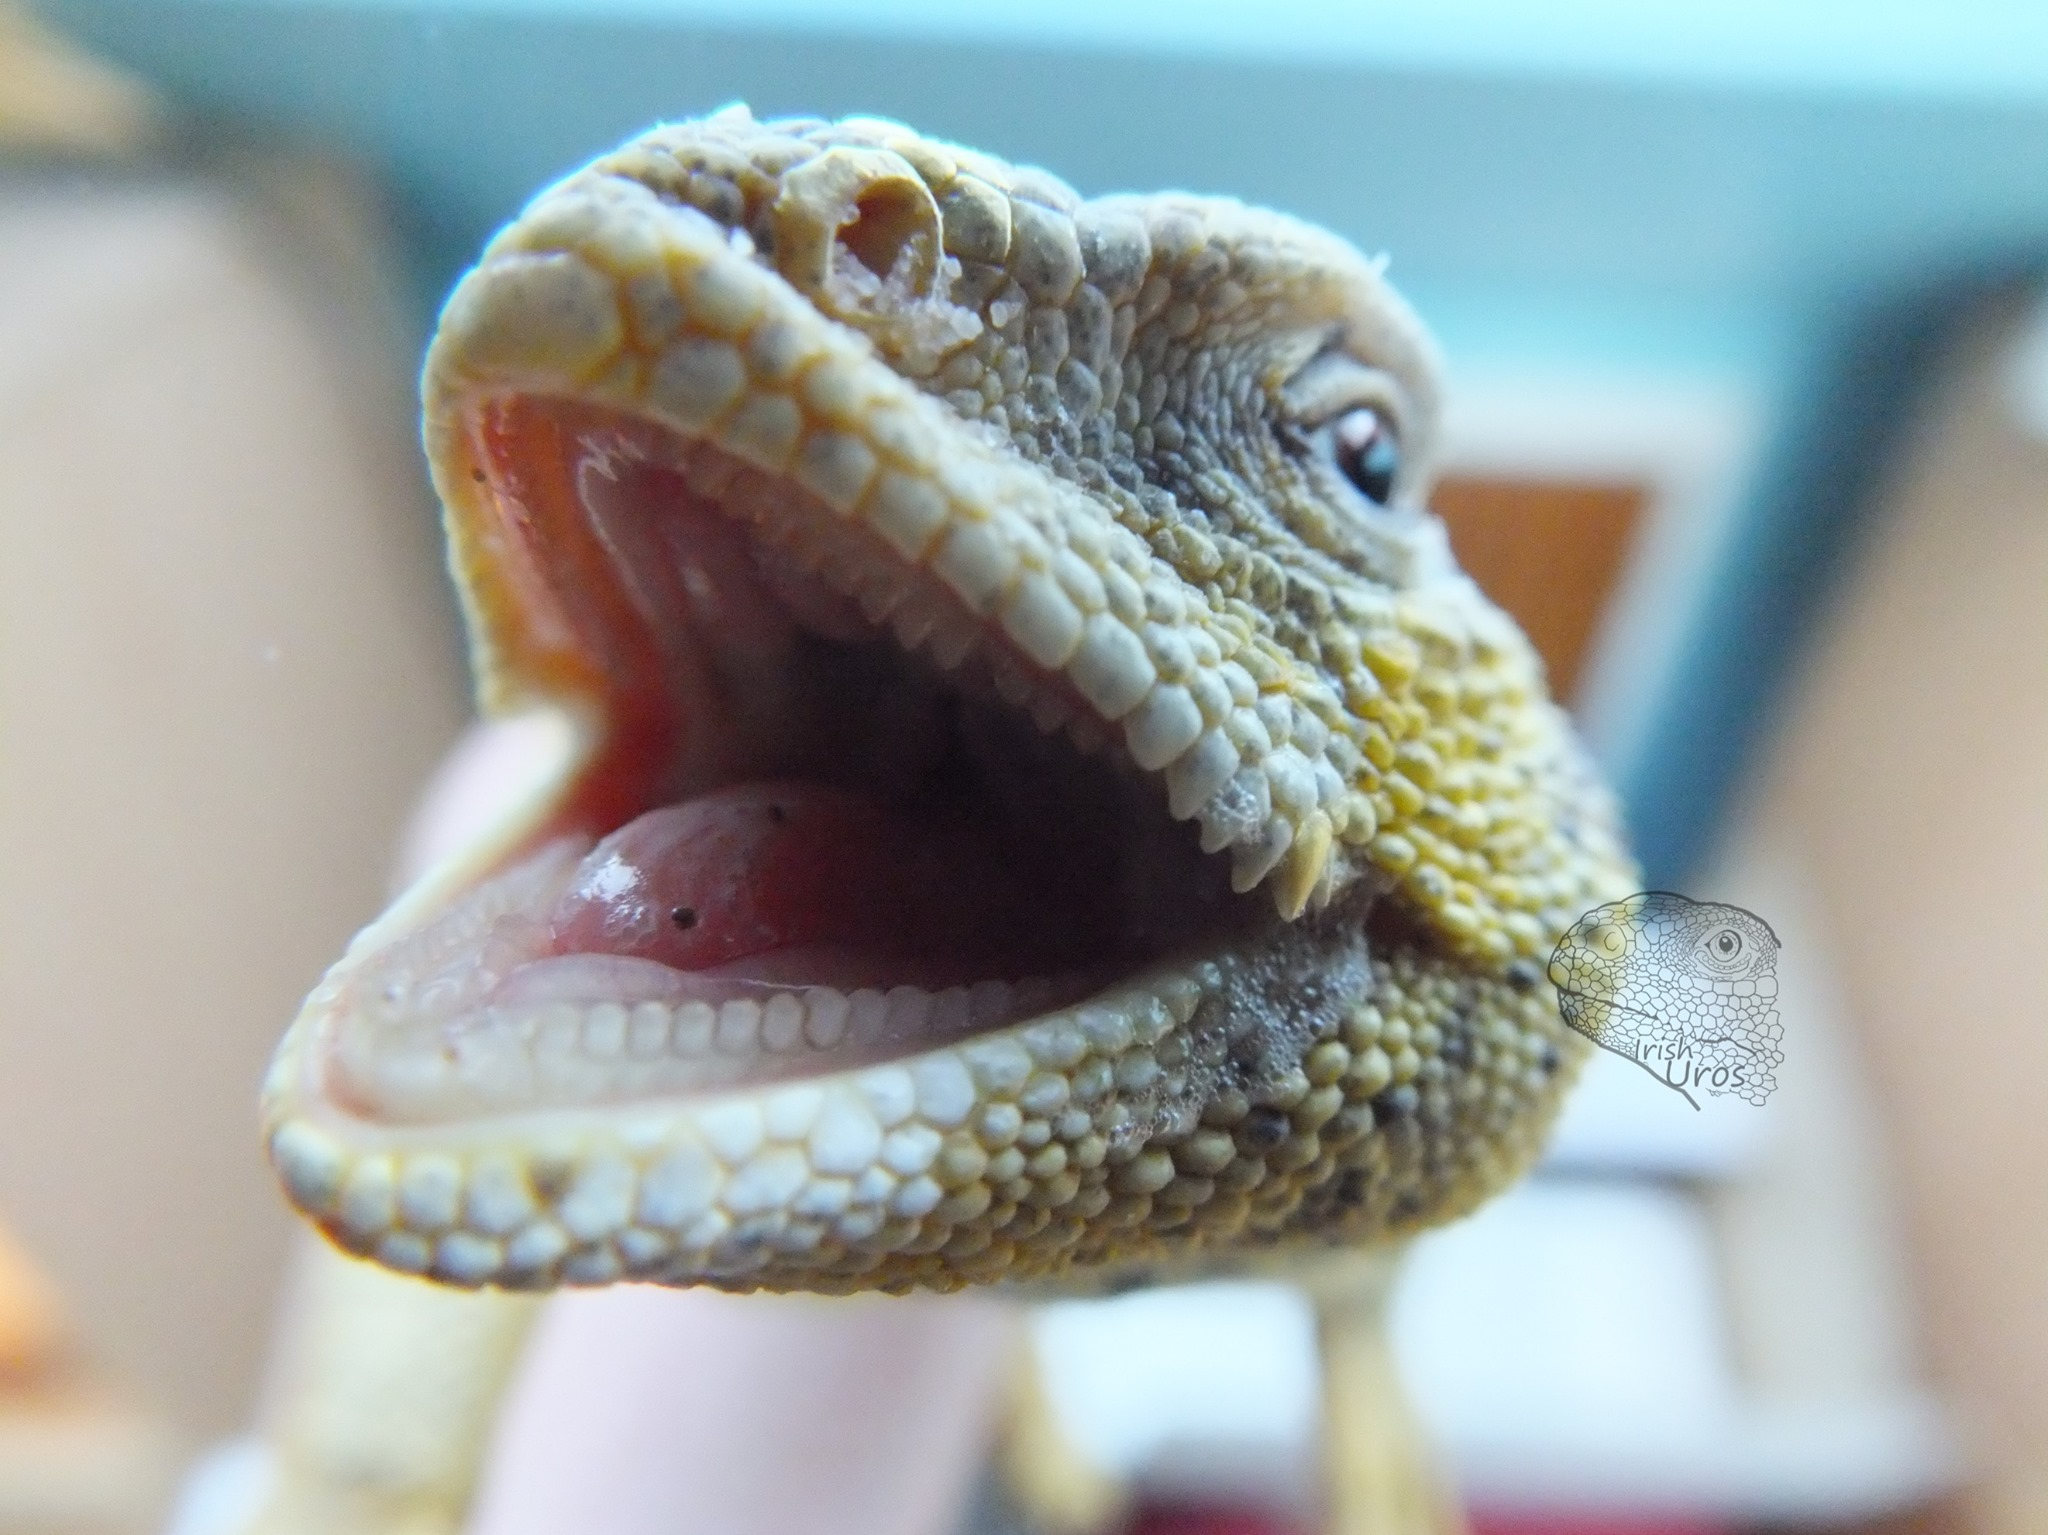 Reptile Dentition: The Details on Reptile Teeth